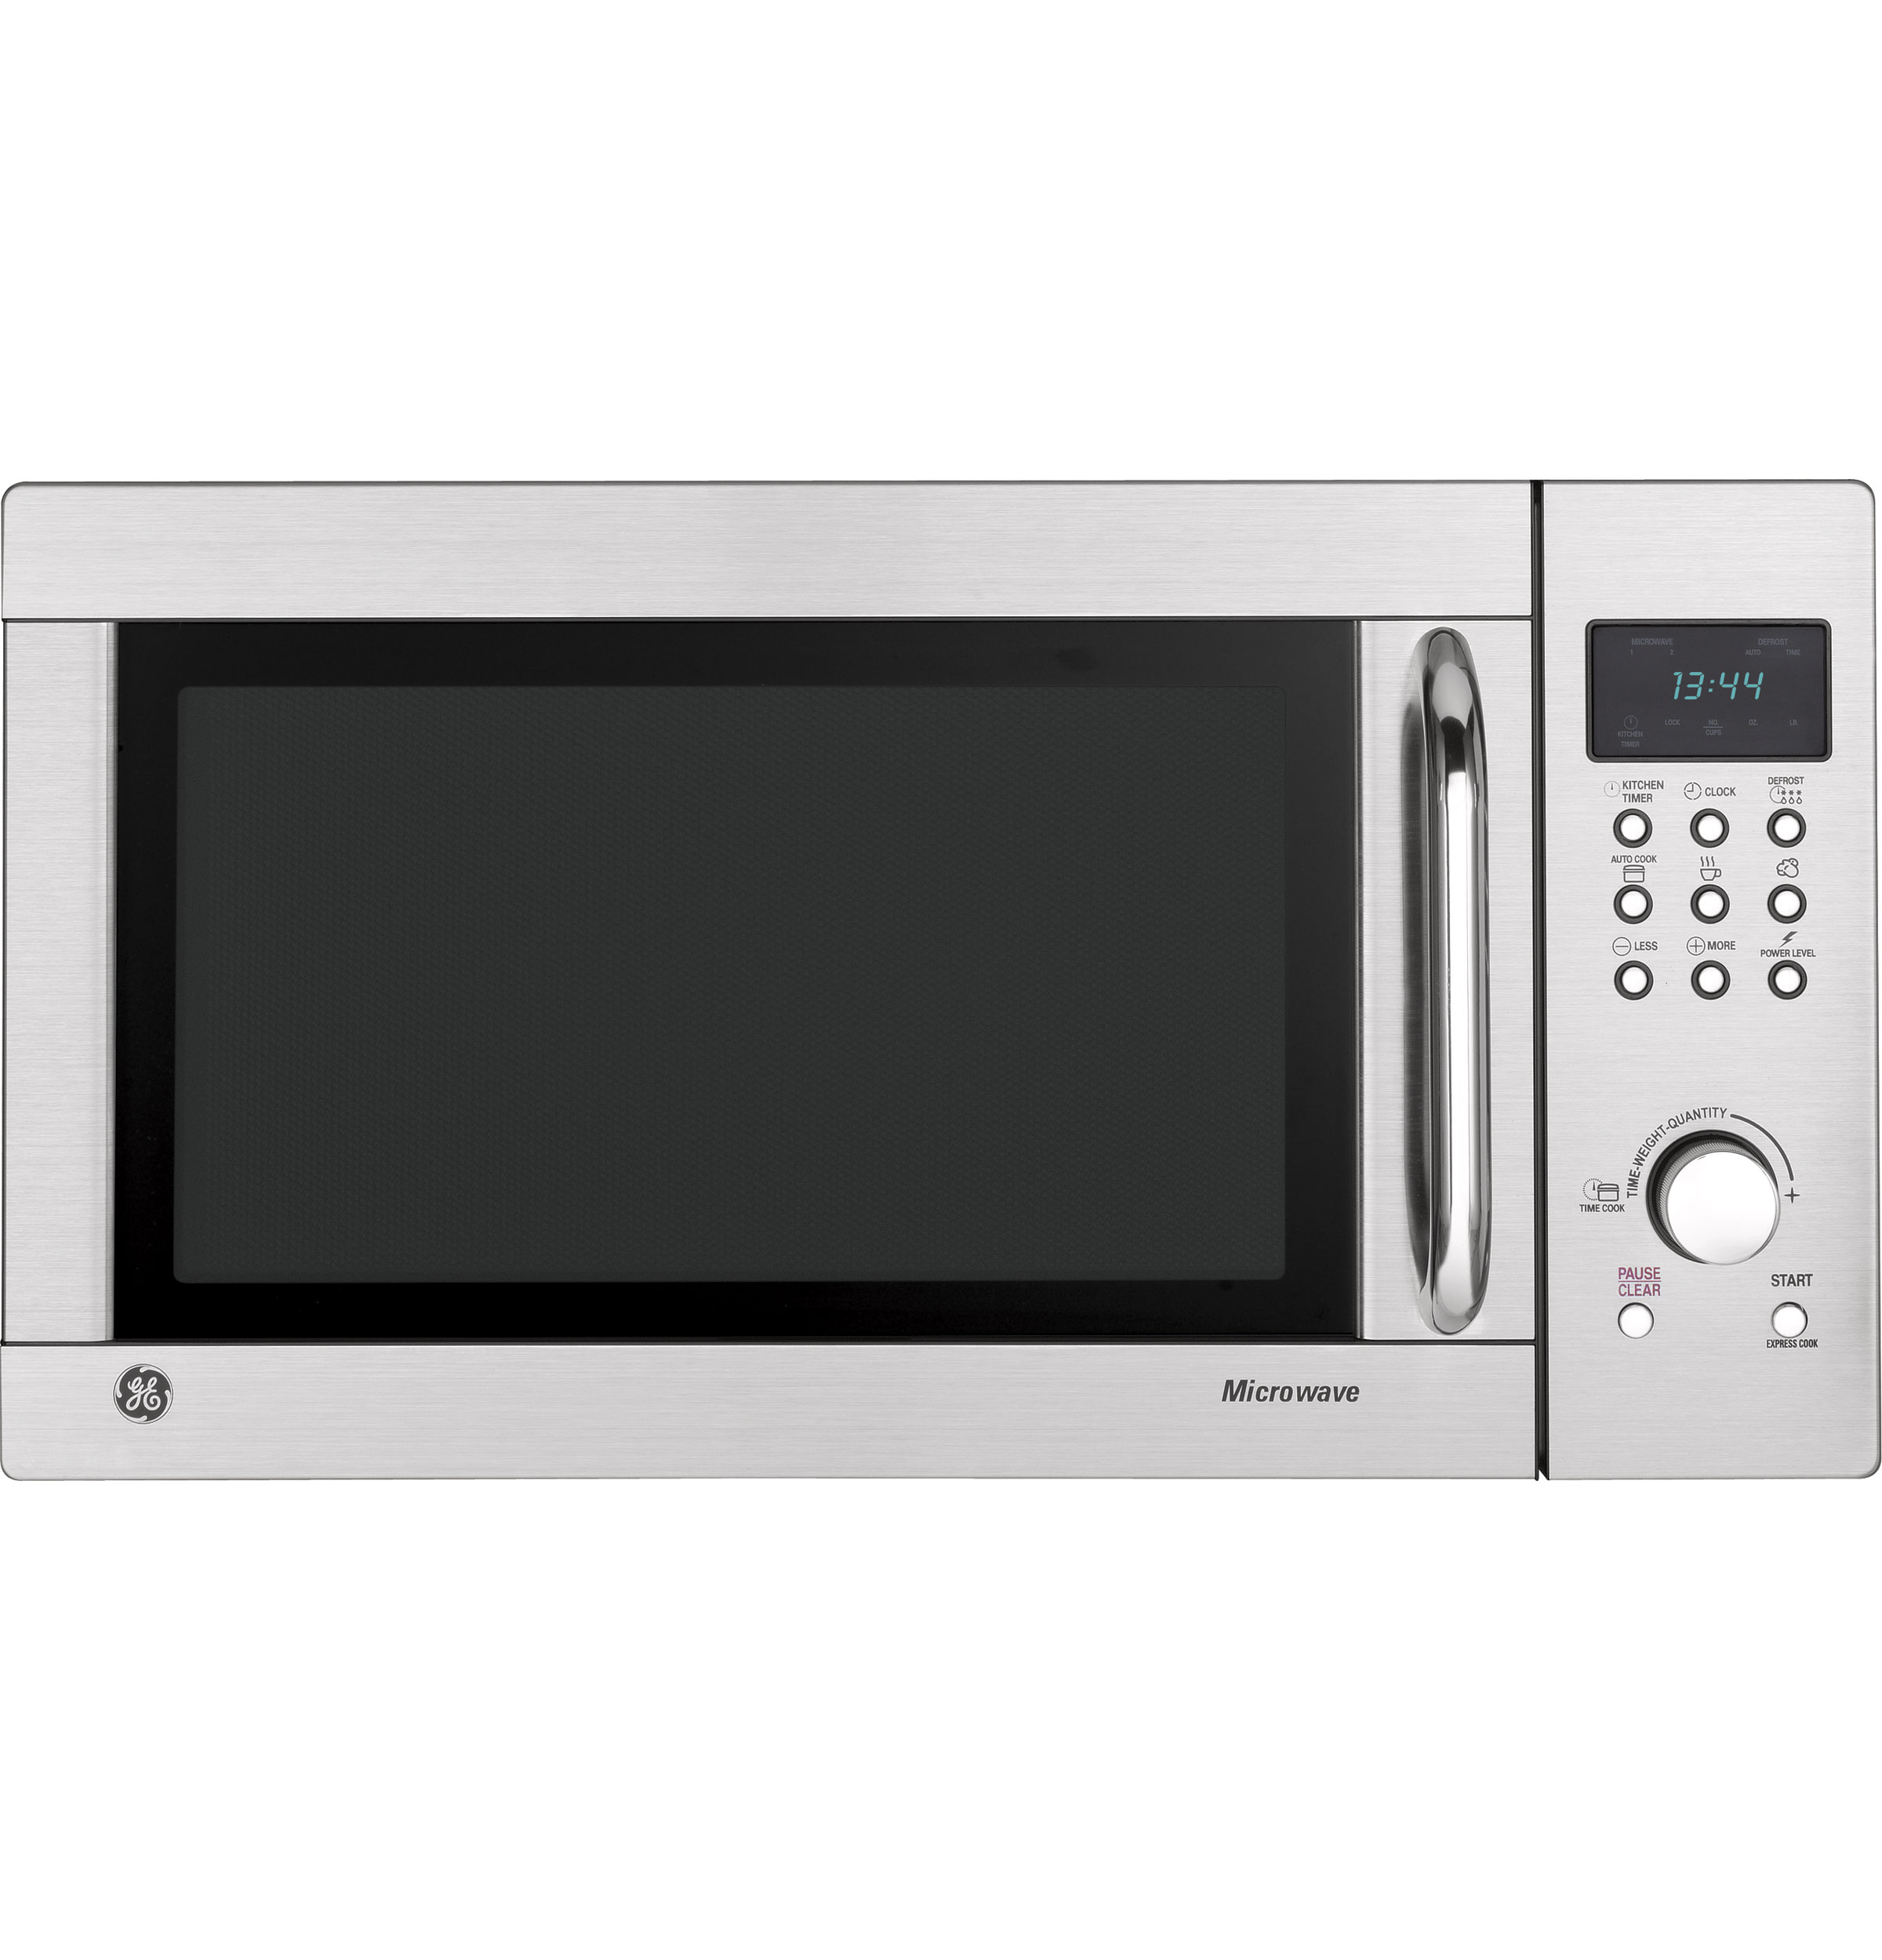 Countertop Oven And Microwave : GE? 1.3 Cu. Ft. Countertop Microwave Oven JES1344SK GE Appliances